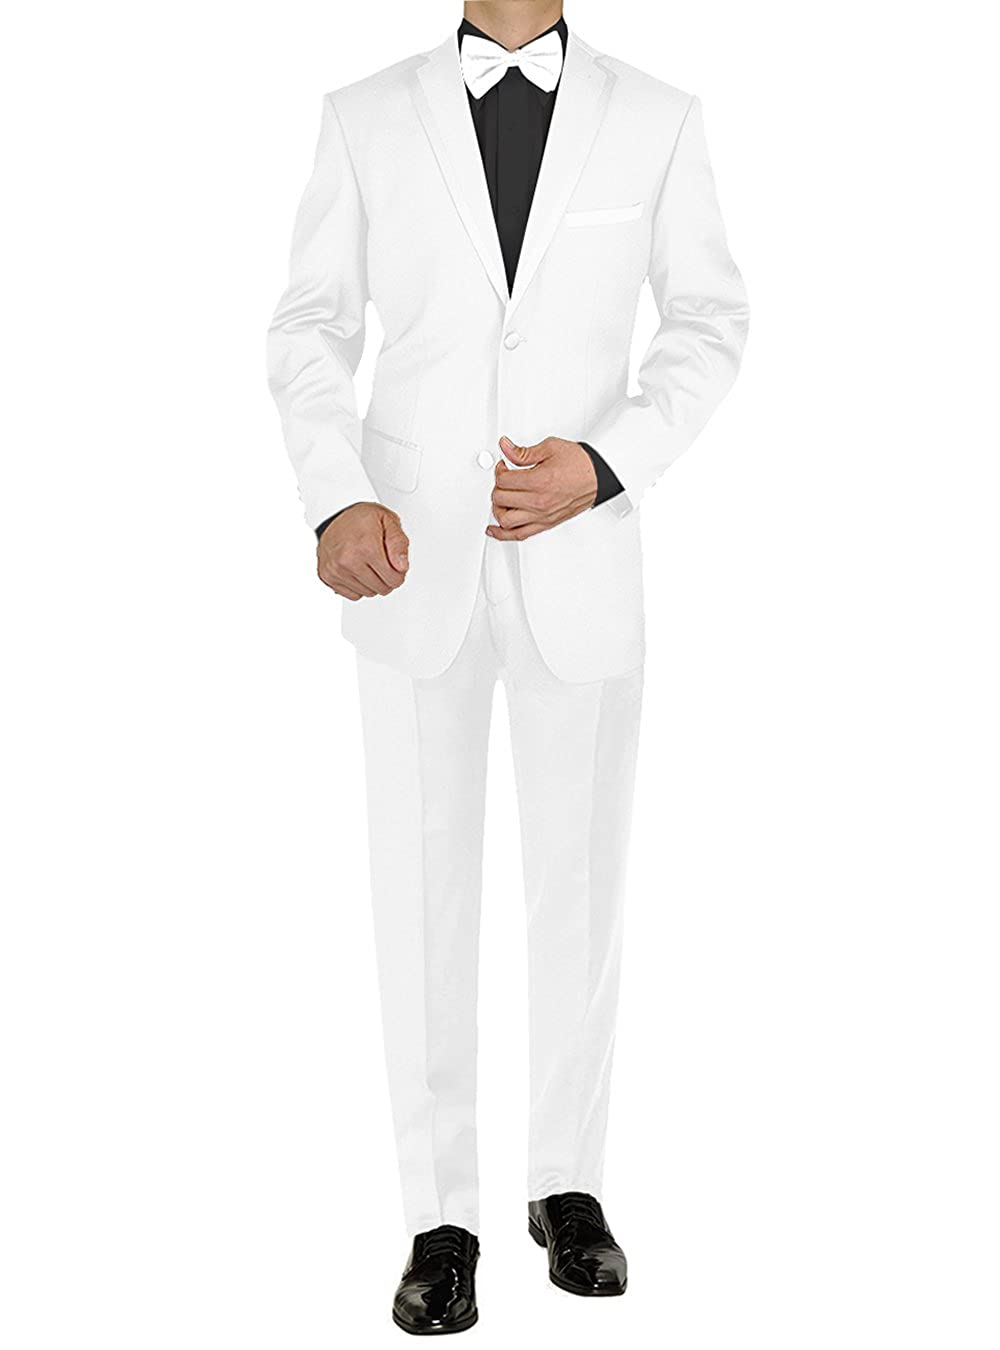 GN GIORGIO NAPOLI Mens Tuxedo Suit Two Button Jacket Flat Front Adjustable Pants